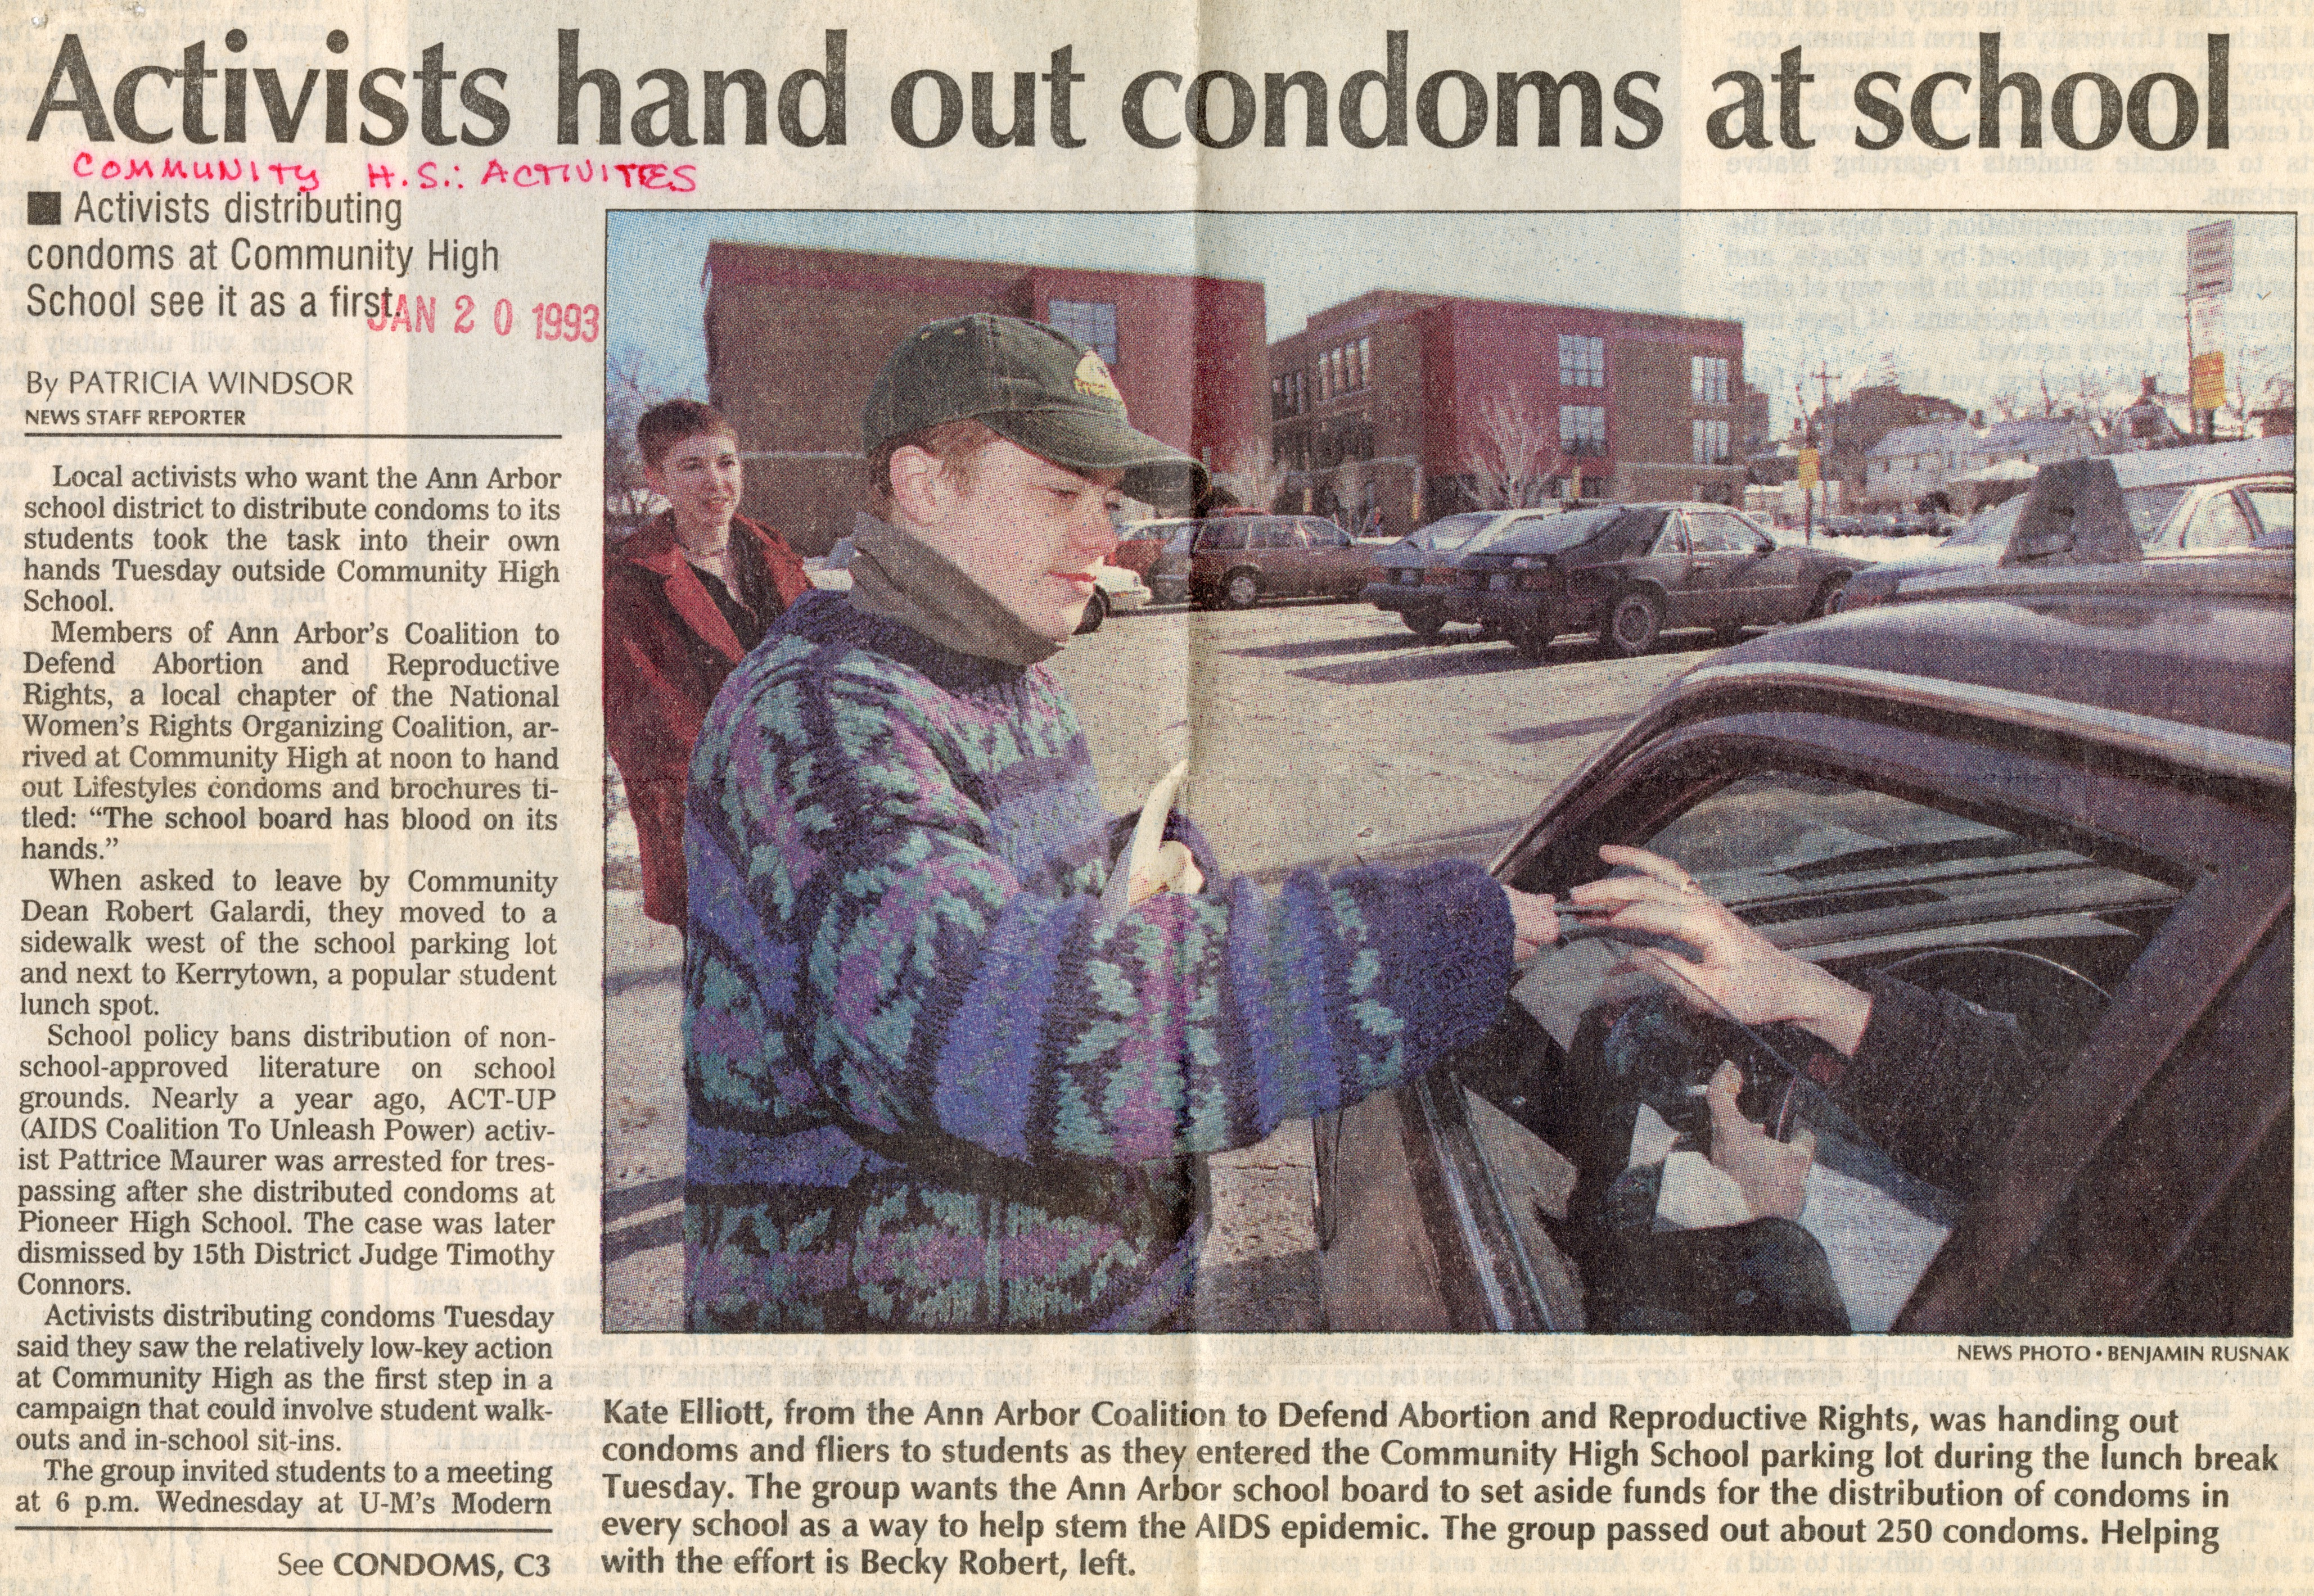 Activists hand out condoms at school image